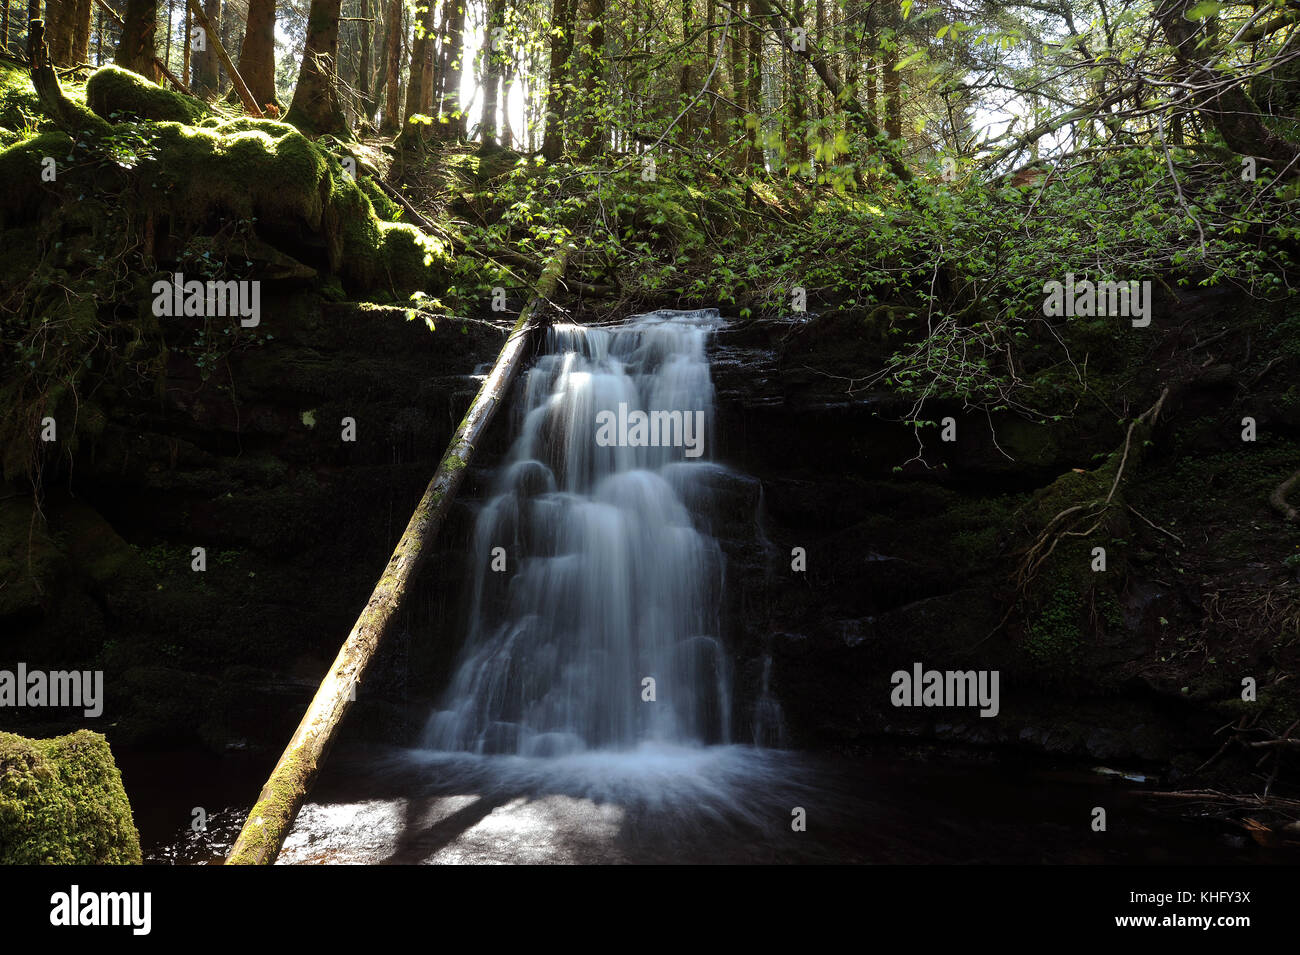 The middle one of three small waterfalls on the Nant Bwrefwr between the cascade and the main fall. - Stock Image